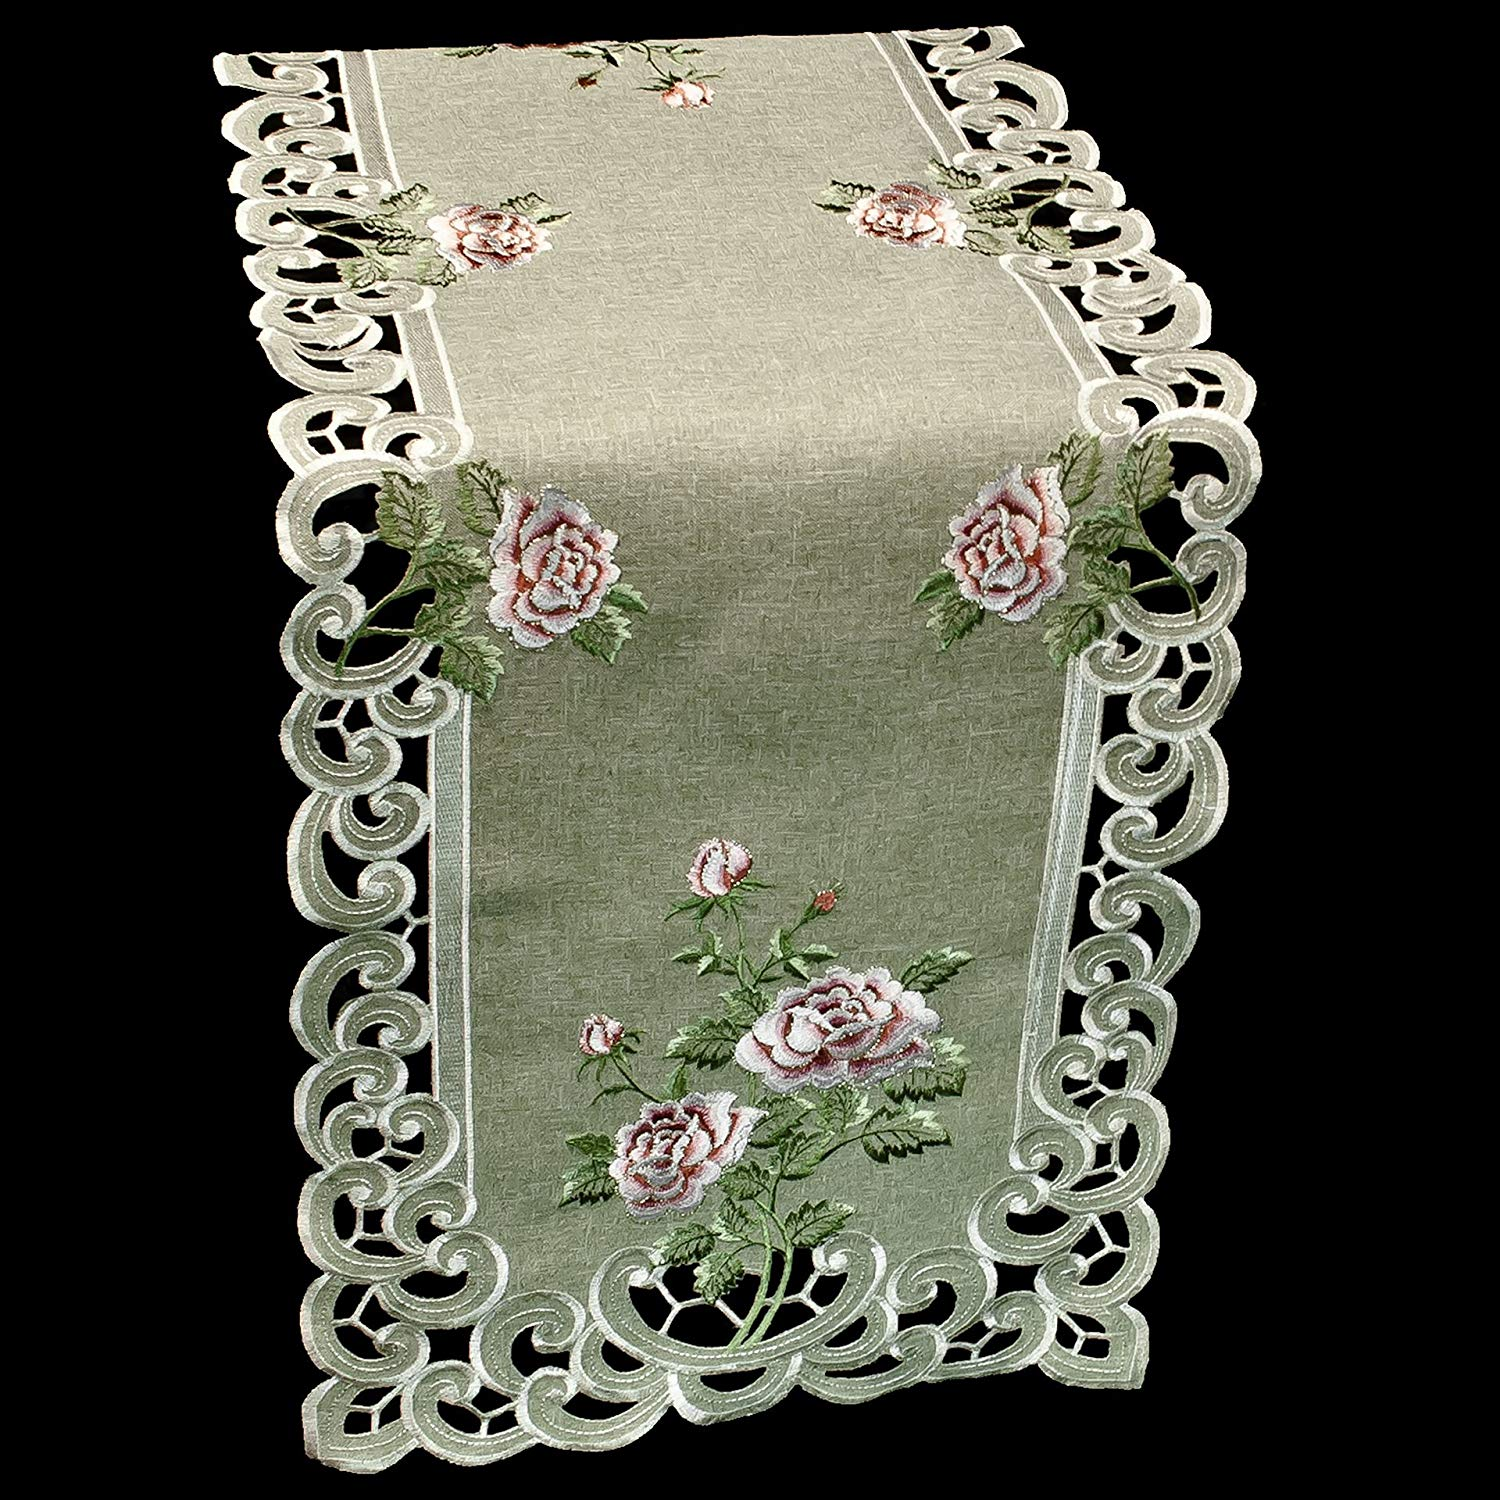 Table Runner with a Pink Rose and Sage Green Burlap Linen Fabric, Size 53 x 15 inches